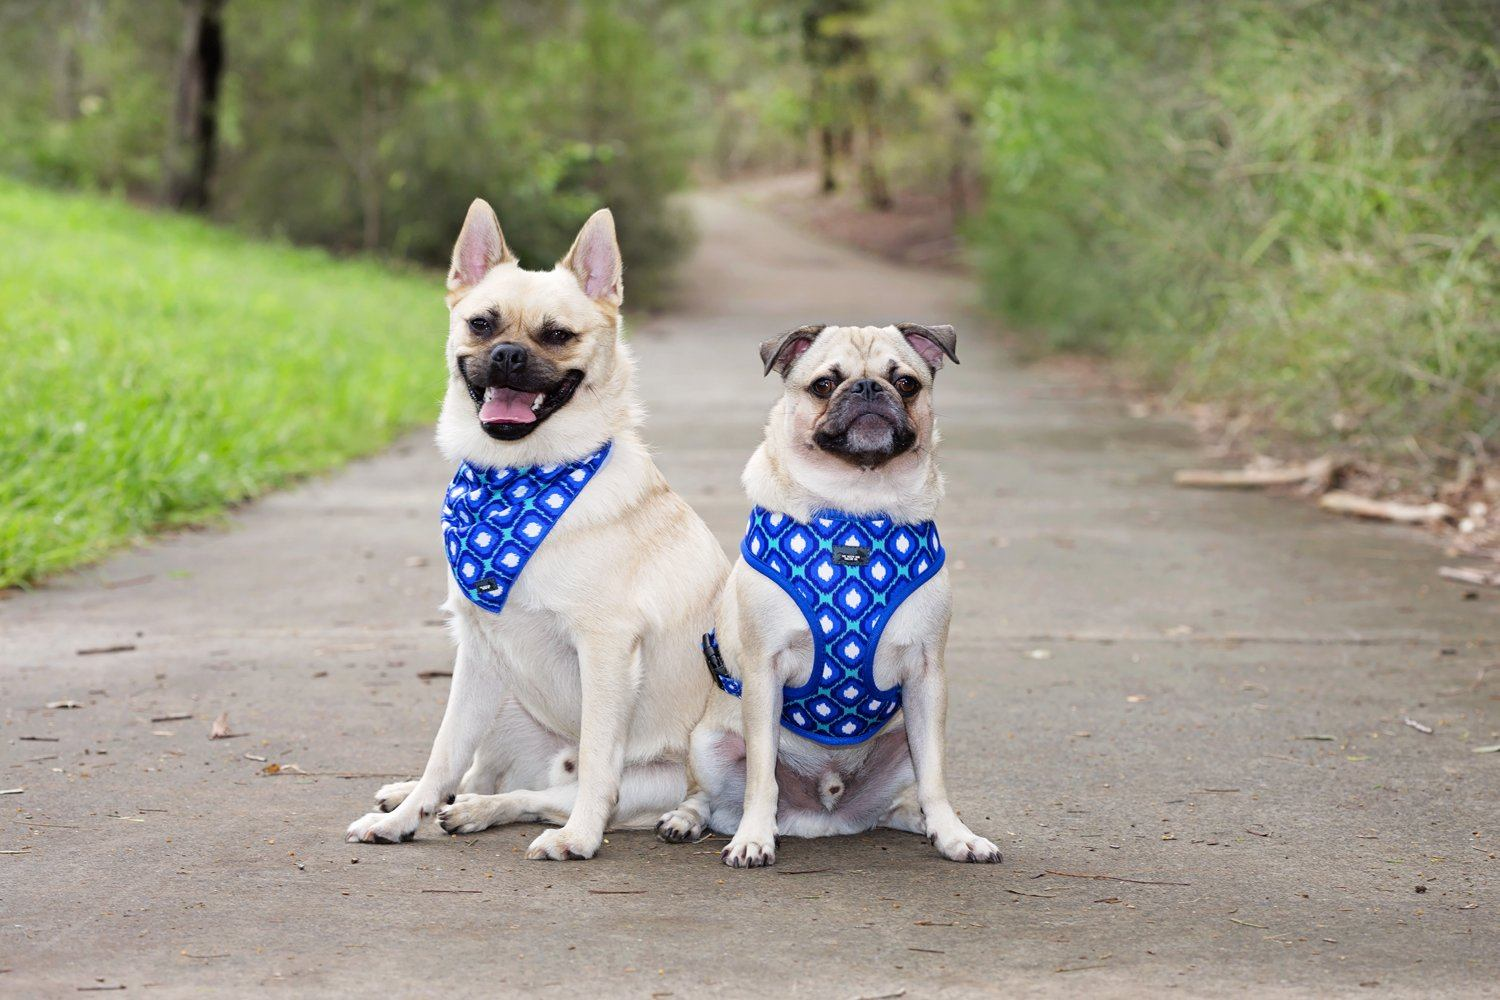 Blue Ikat- Tie Up Dog Bandana-Dizzy Dog Collars